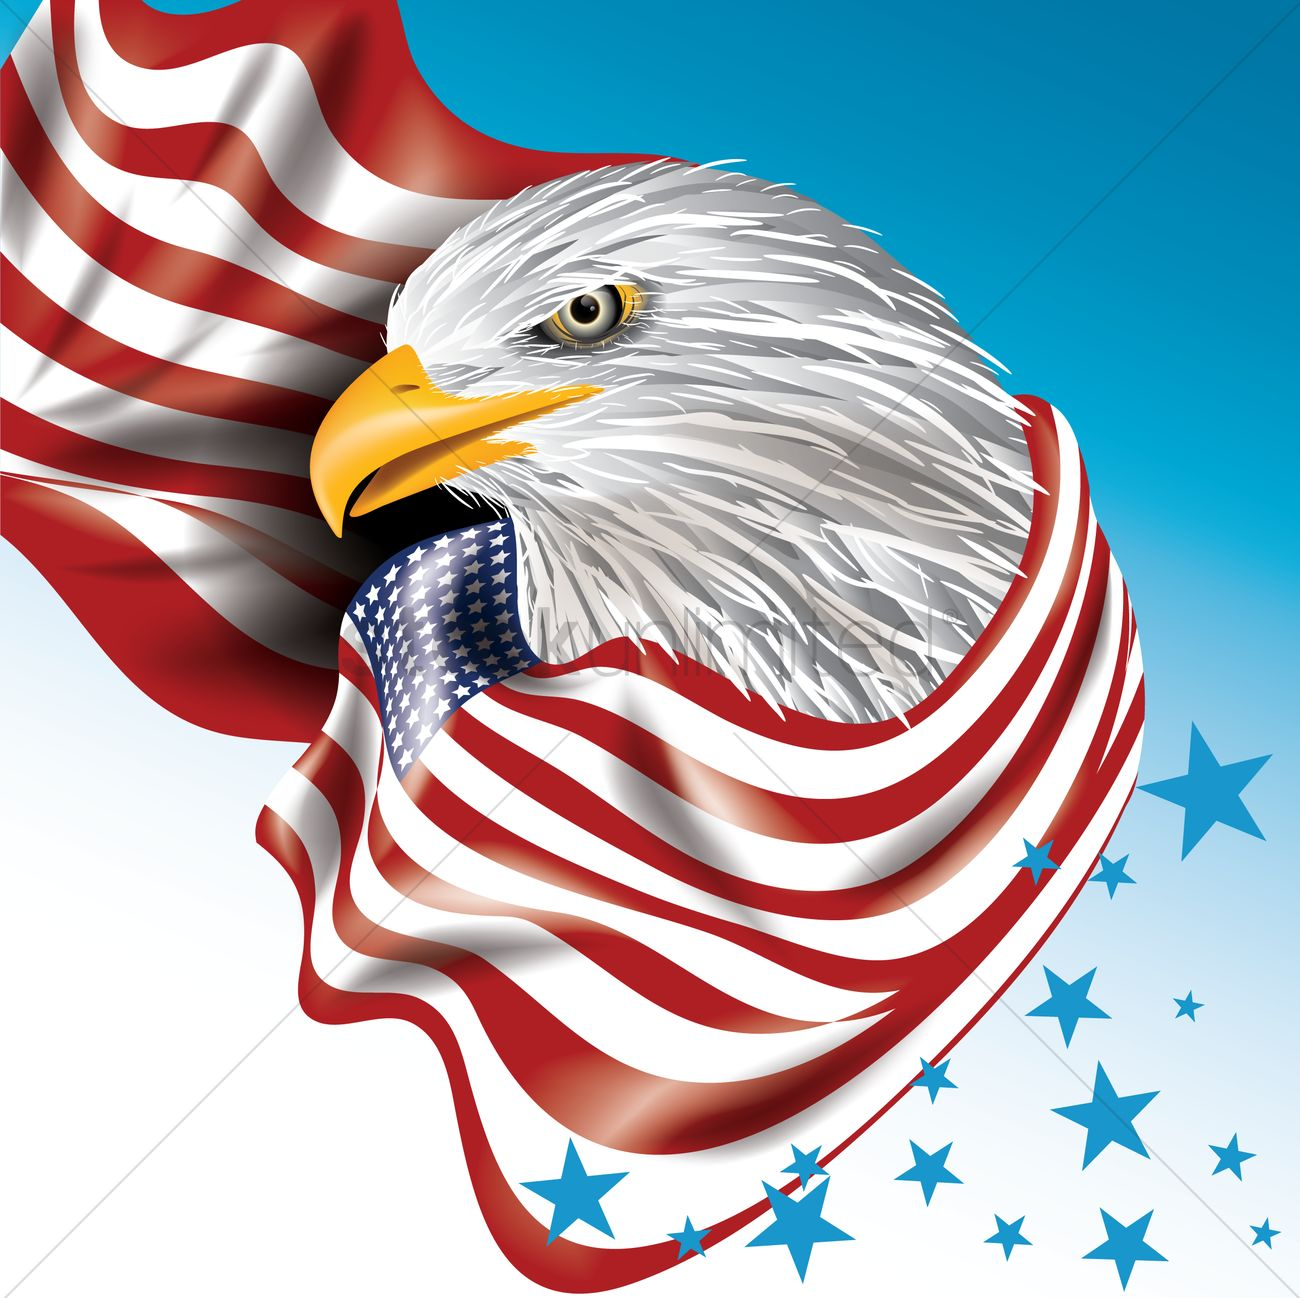 usa eagle design vector image 1553380 stockunlimited American Flag with Eagle Graphic American Flag Day Graphics Free